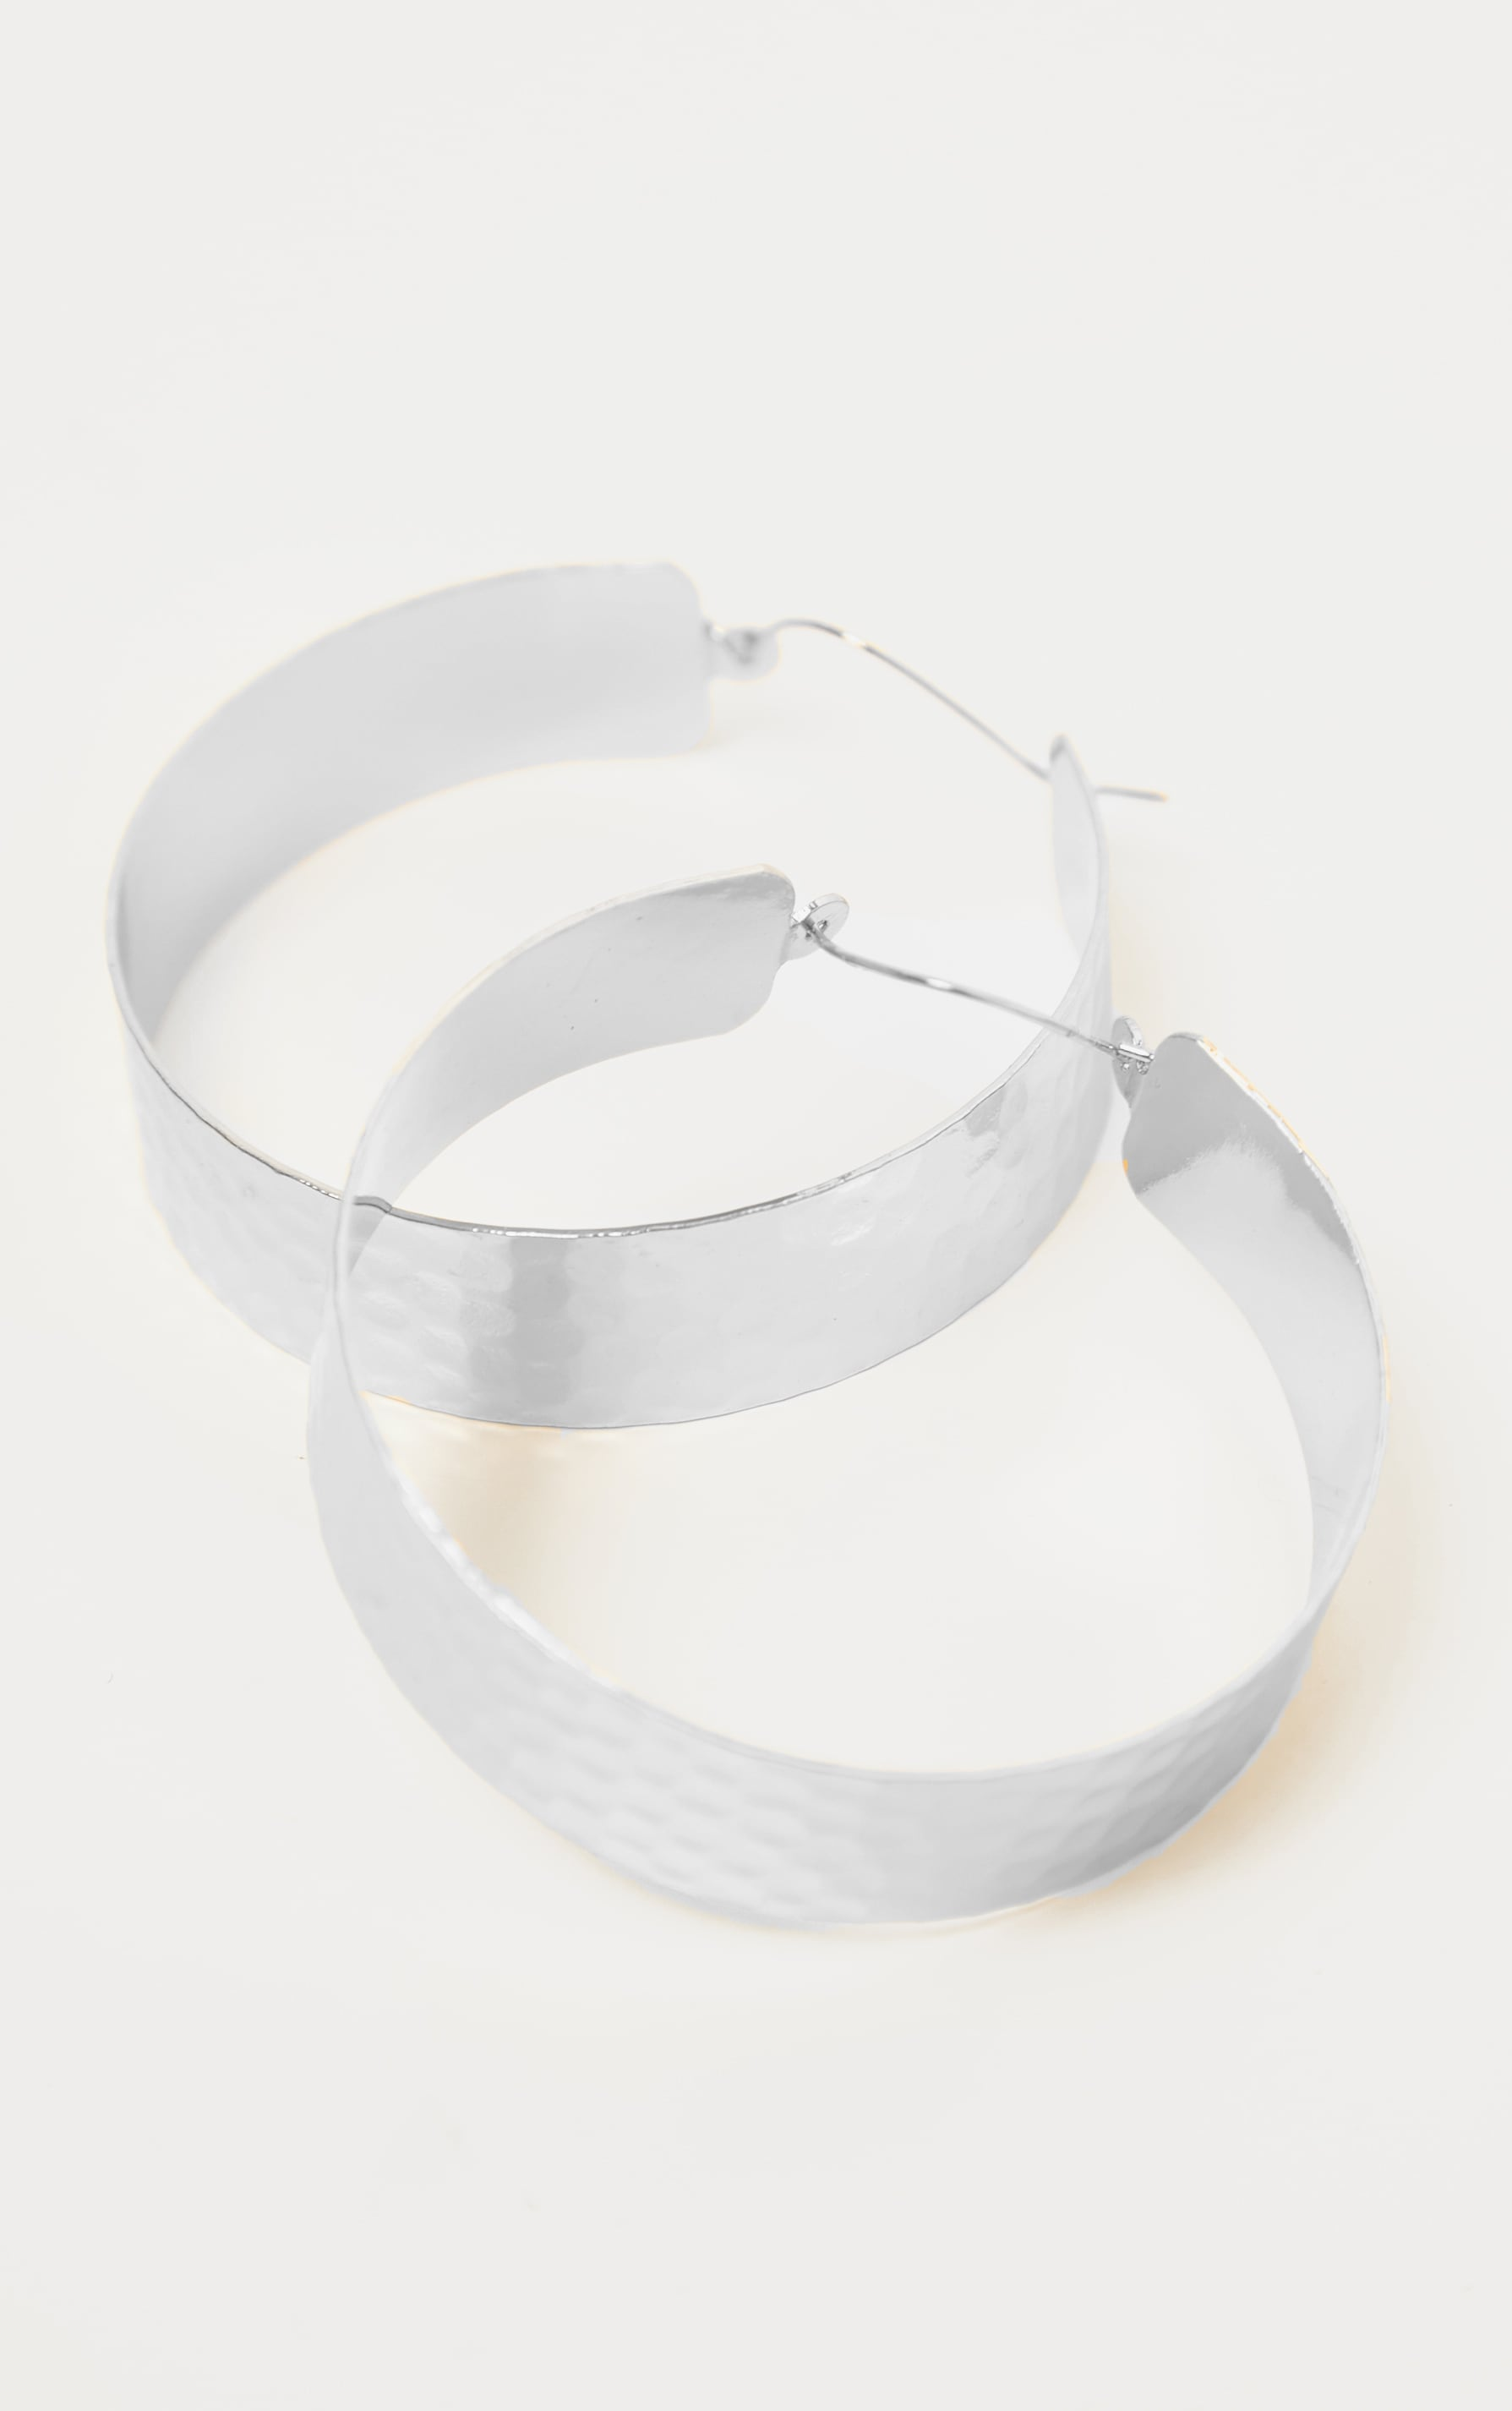 Silver Textured Wide Flat Hoops 3